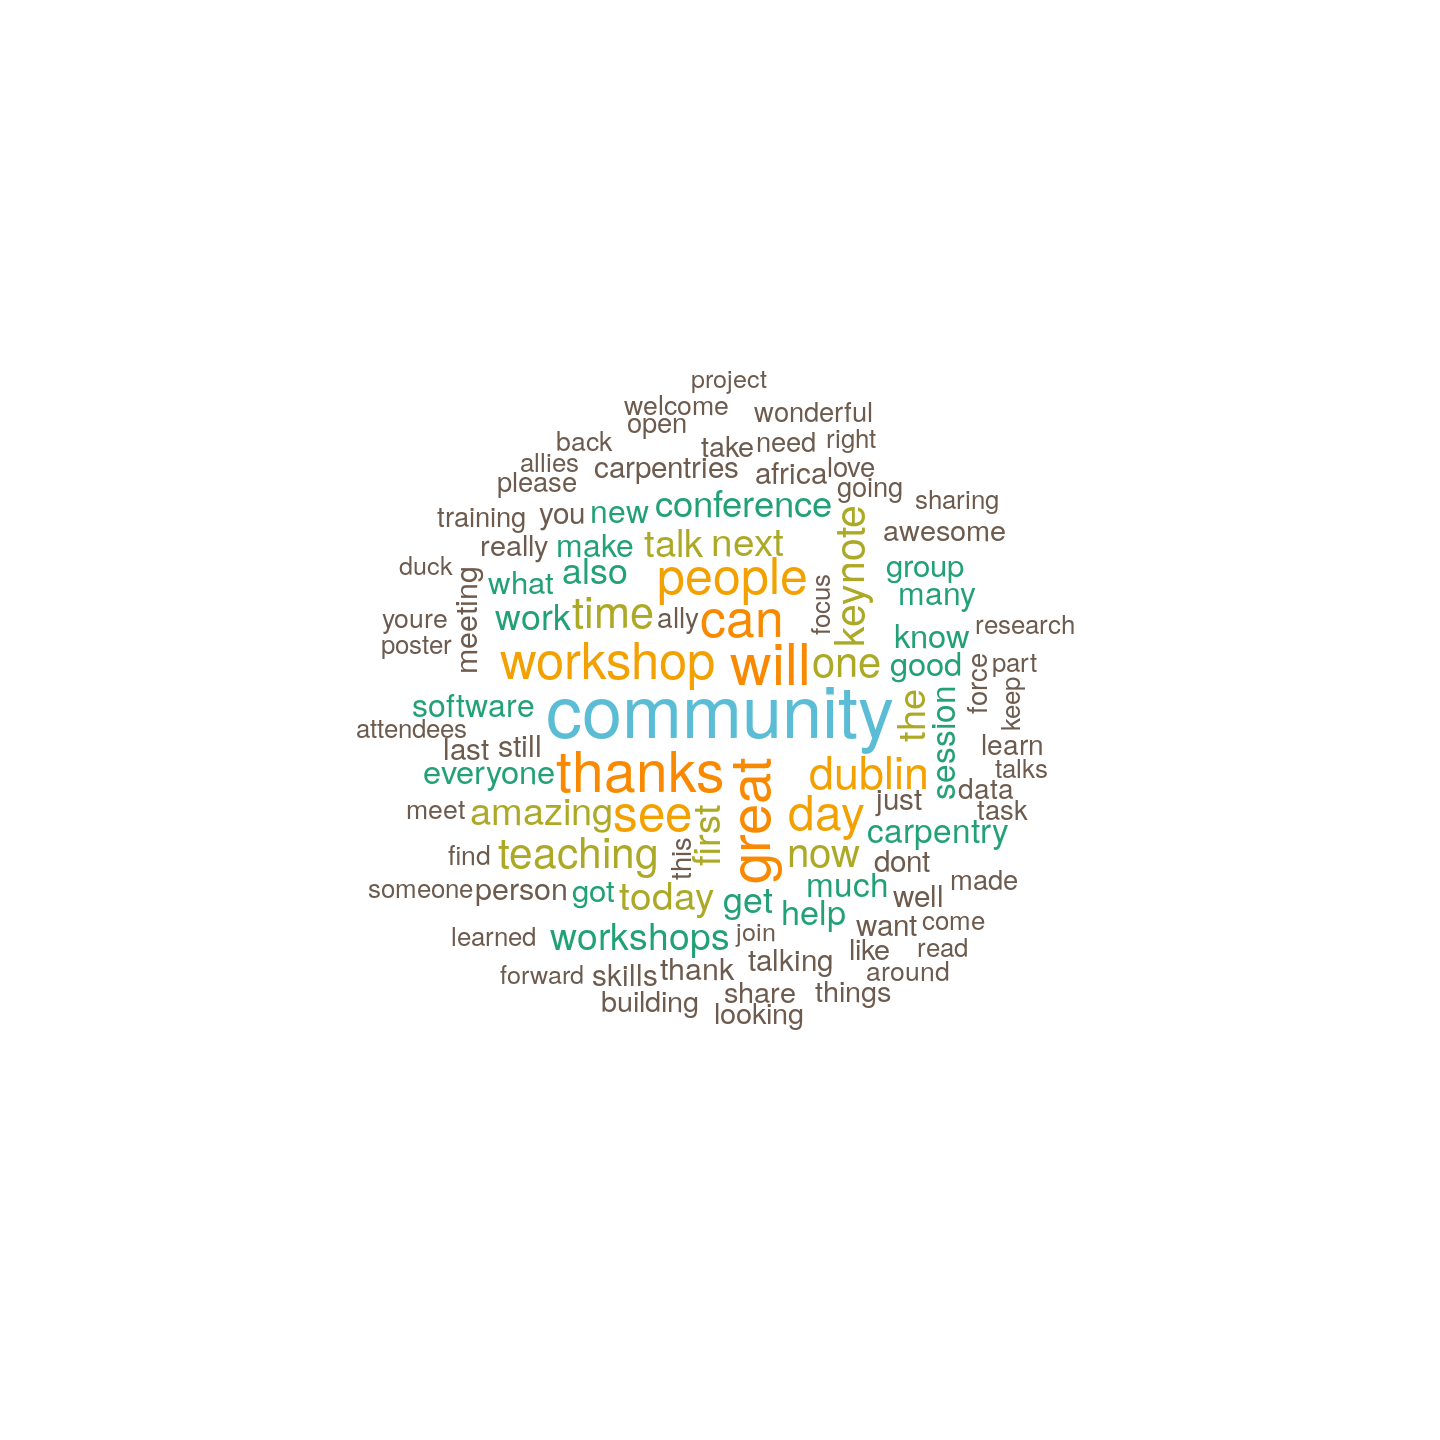 plot of chunk word-cloud